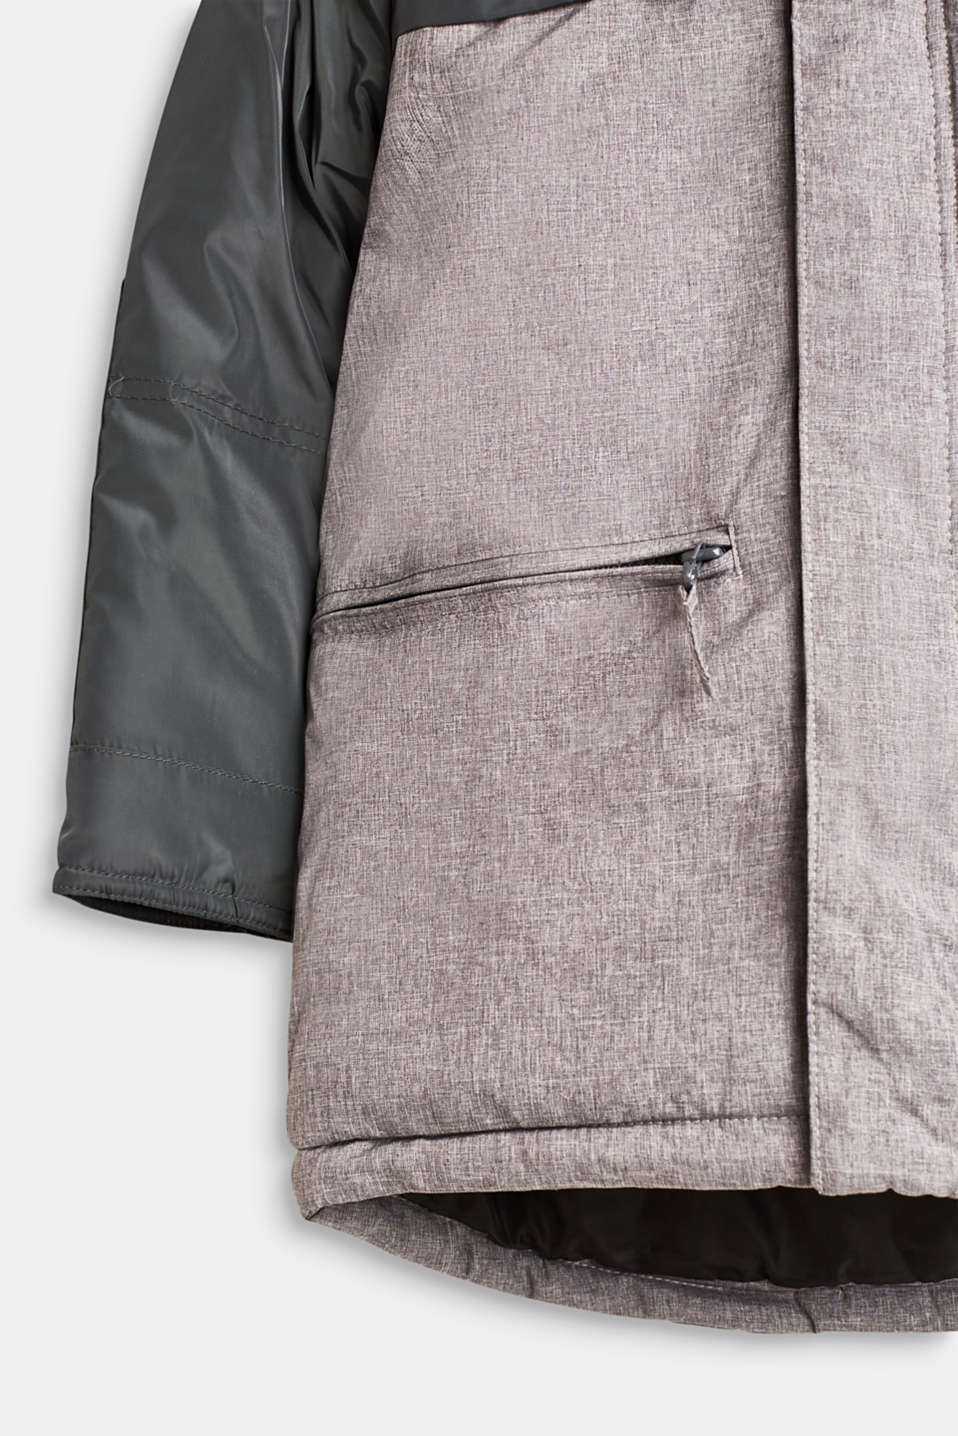 Jackets outdoor woven, LCPEEBLE, detail image number 2